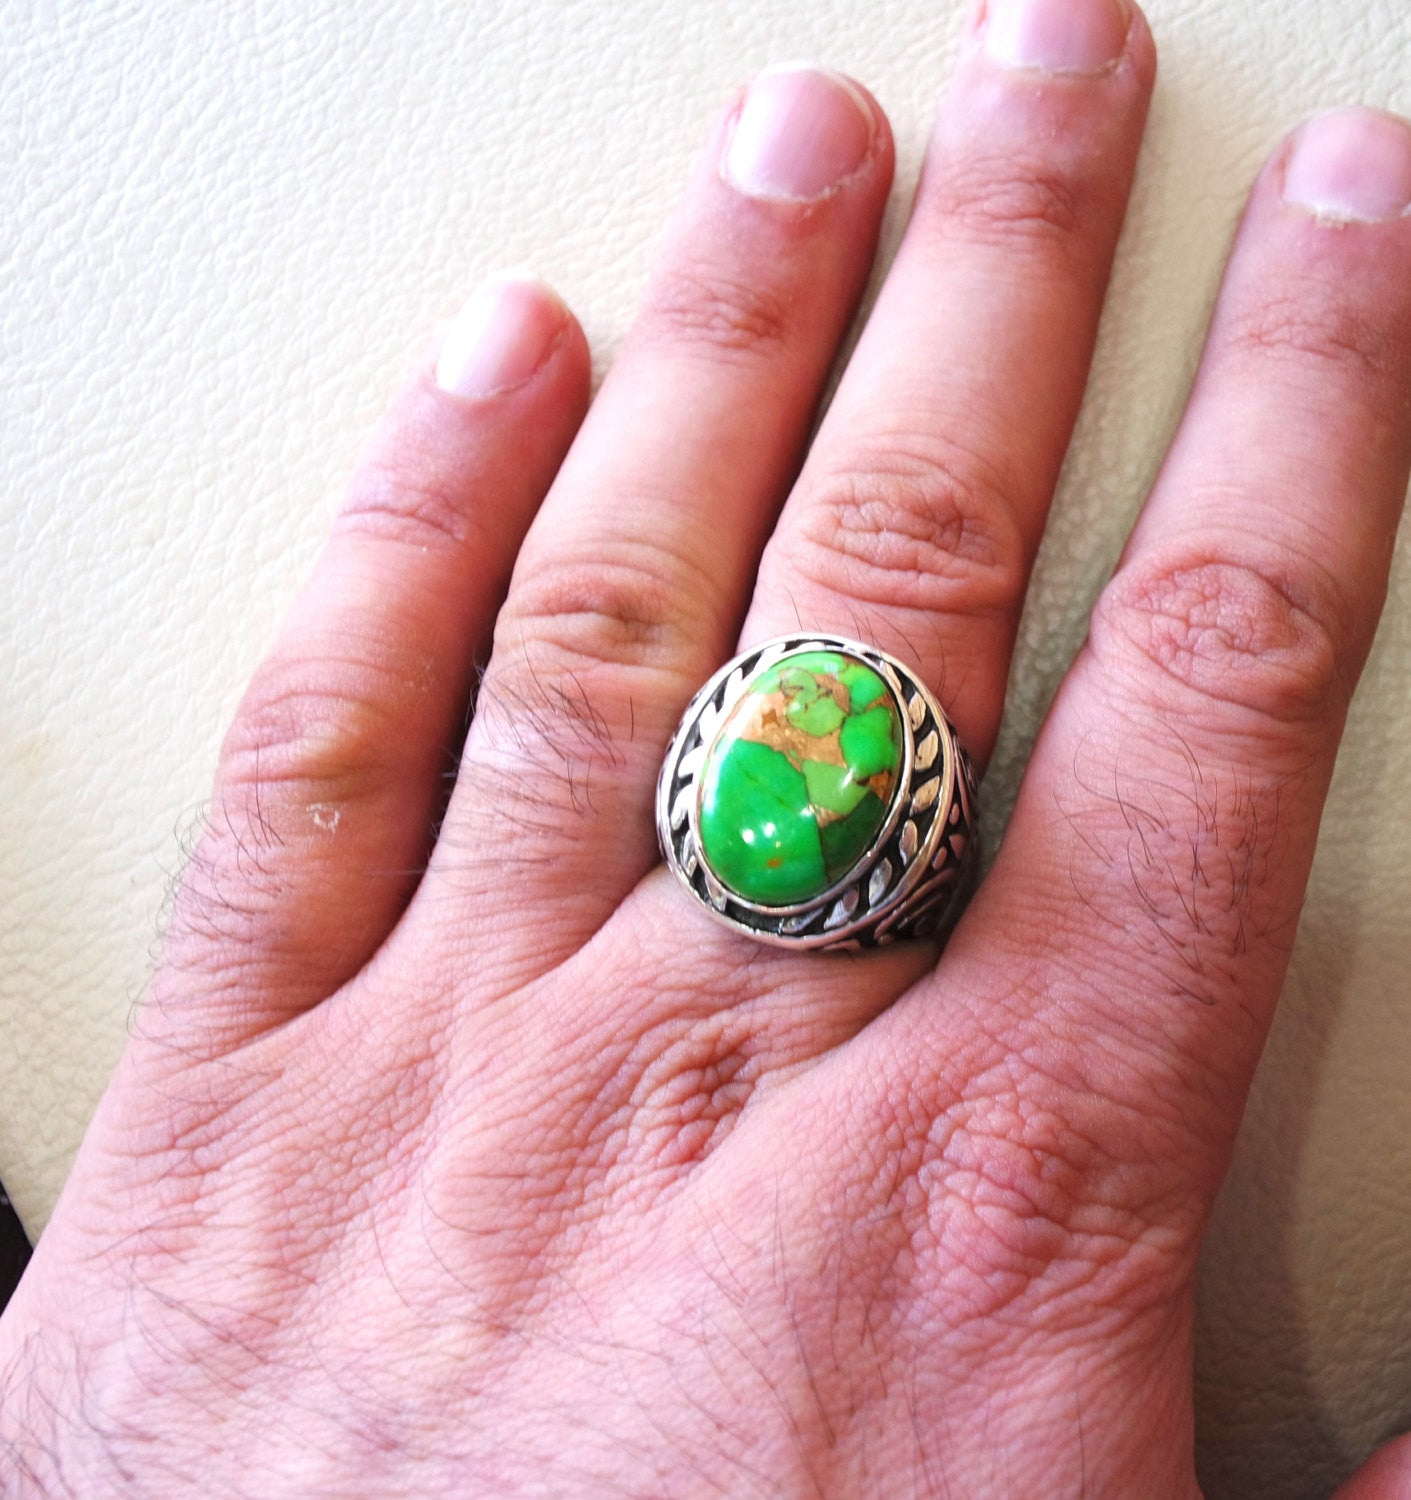 green copper turquoise huge natural stone men ring sterling silver 925 stunning genuine gem ottoman arabic style jewelry all sizes